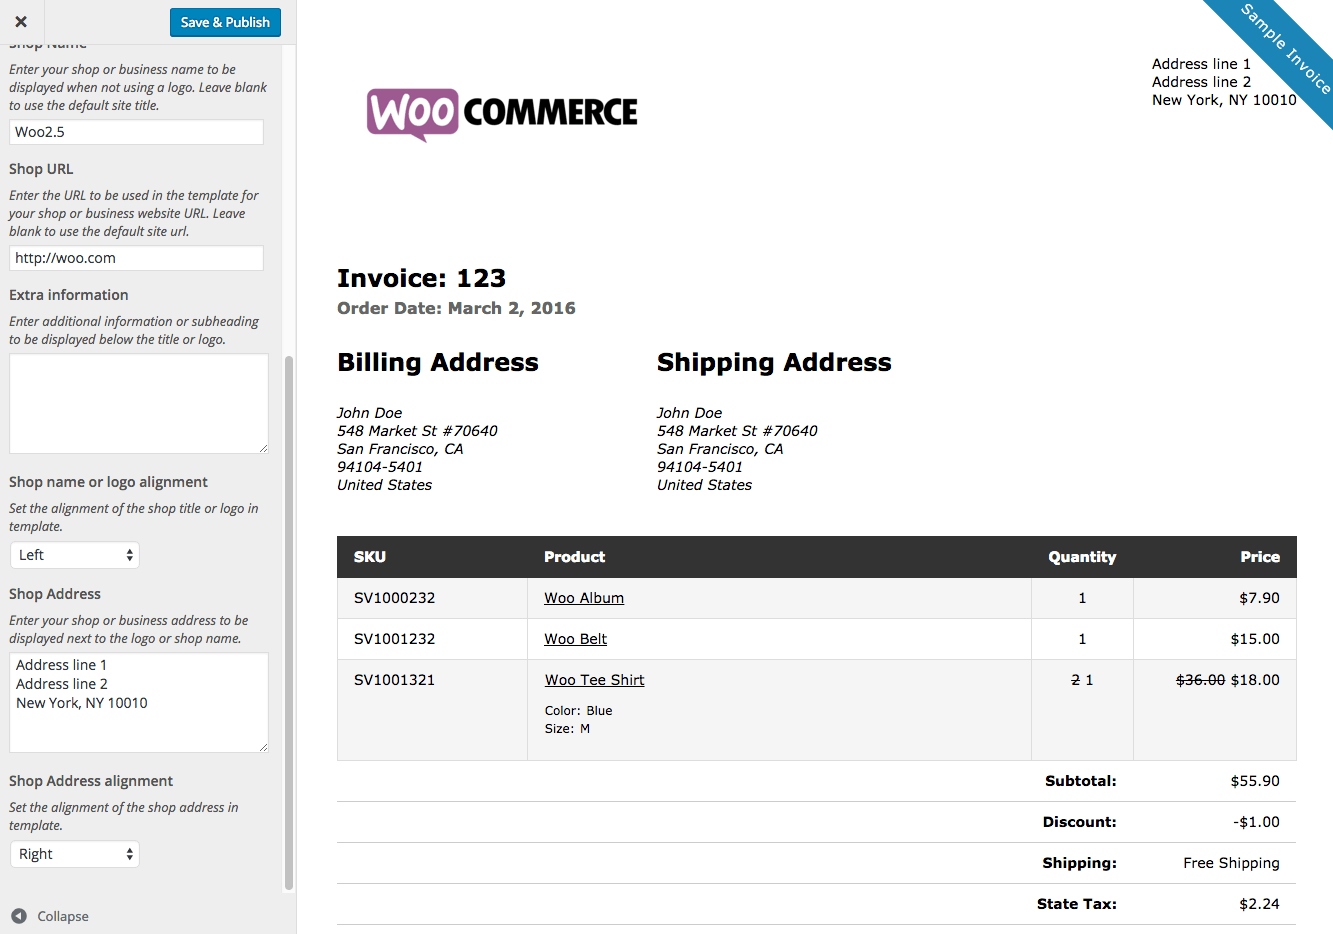 Floobydustus  Nice Print Invoices Amp Packing Lists  Woocommerce With Likable Woocommerce Print Invoices  Packing Lists Customizer With Agreeable Customized Receipt Books Also Earnest Money Receipt In Addition Usps Return Receipt Fee And Fake Hotel Receipt As Well As Child Care Receipt Template Additionally Cash Receipts Template From Woocommercecom With Floobydustus  Likable Print Invoices Amp Packing Lists  Woocommerce With Agreeable Woocommerce Print Invoices  Packing Lists Customizer And Nice Customized Receipt Books Also Earnest Money Receipt In Addition Usps Return Receipt Fee From Woocommercecom